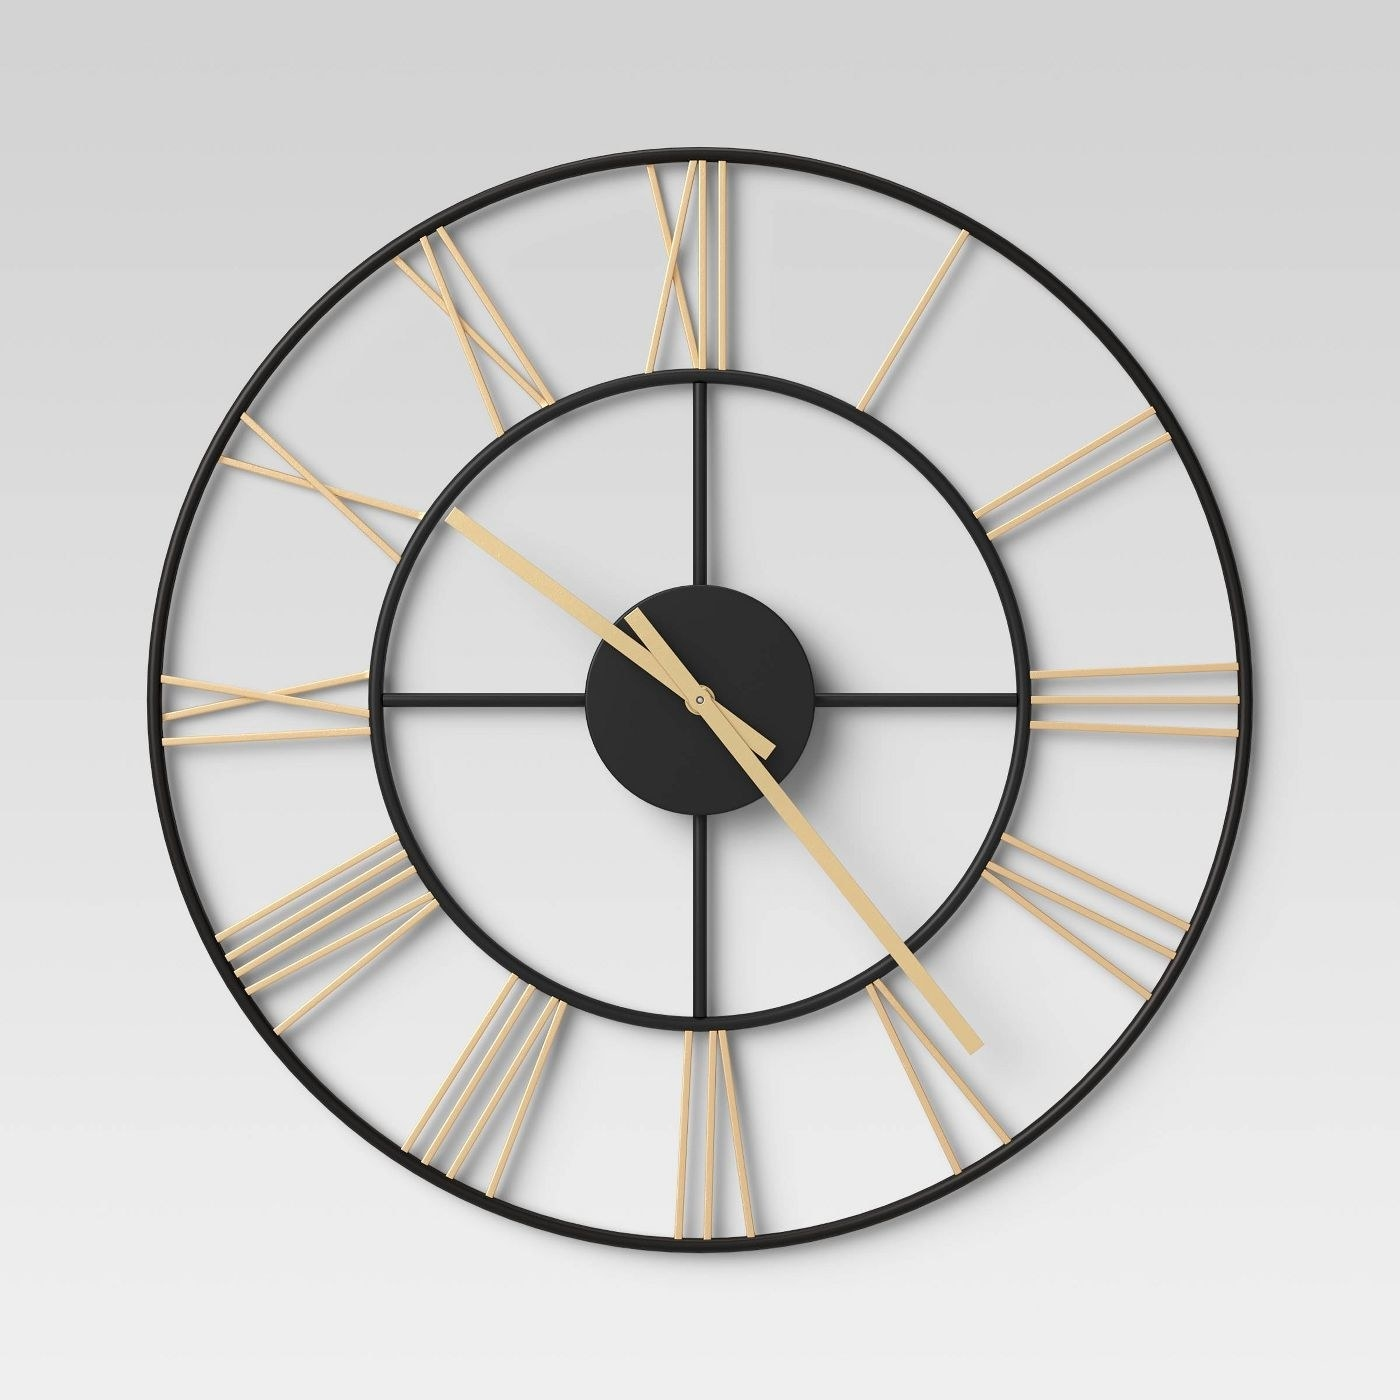 A black and gold clock in a home